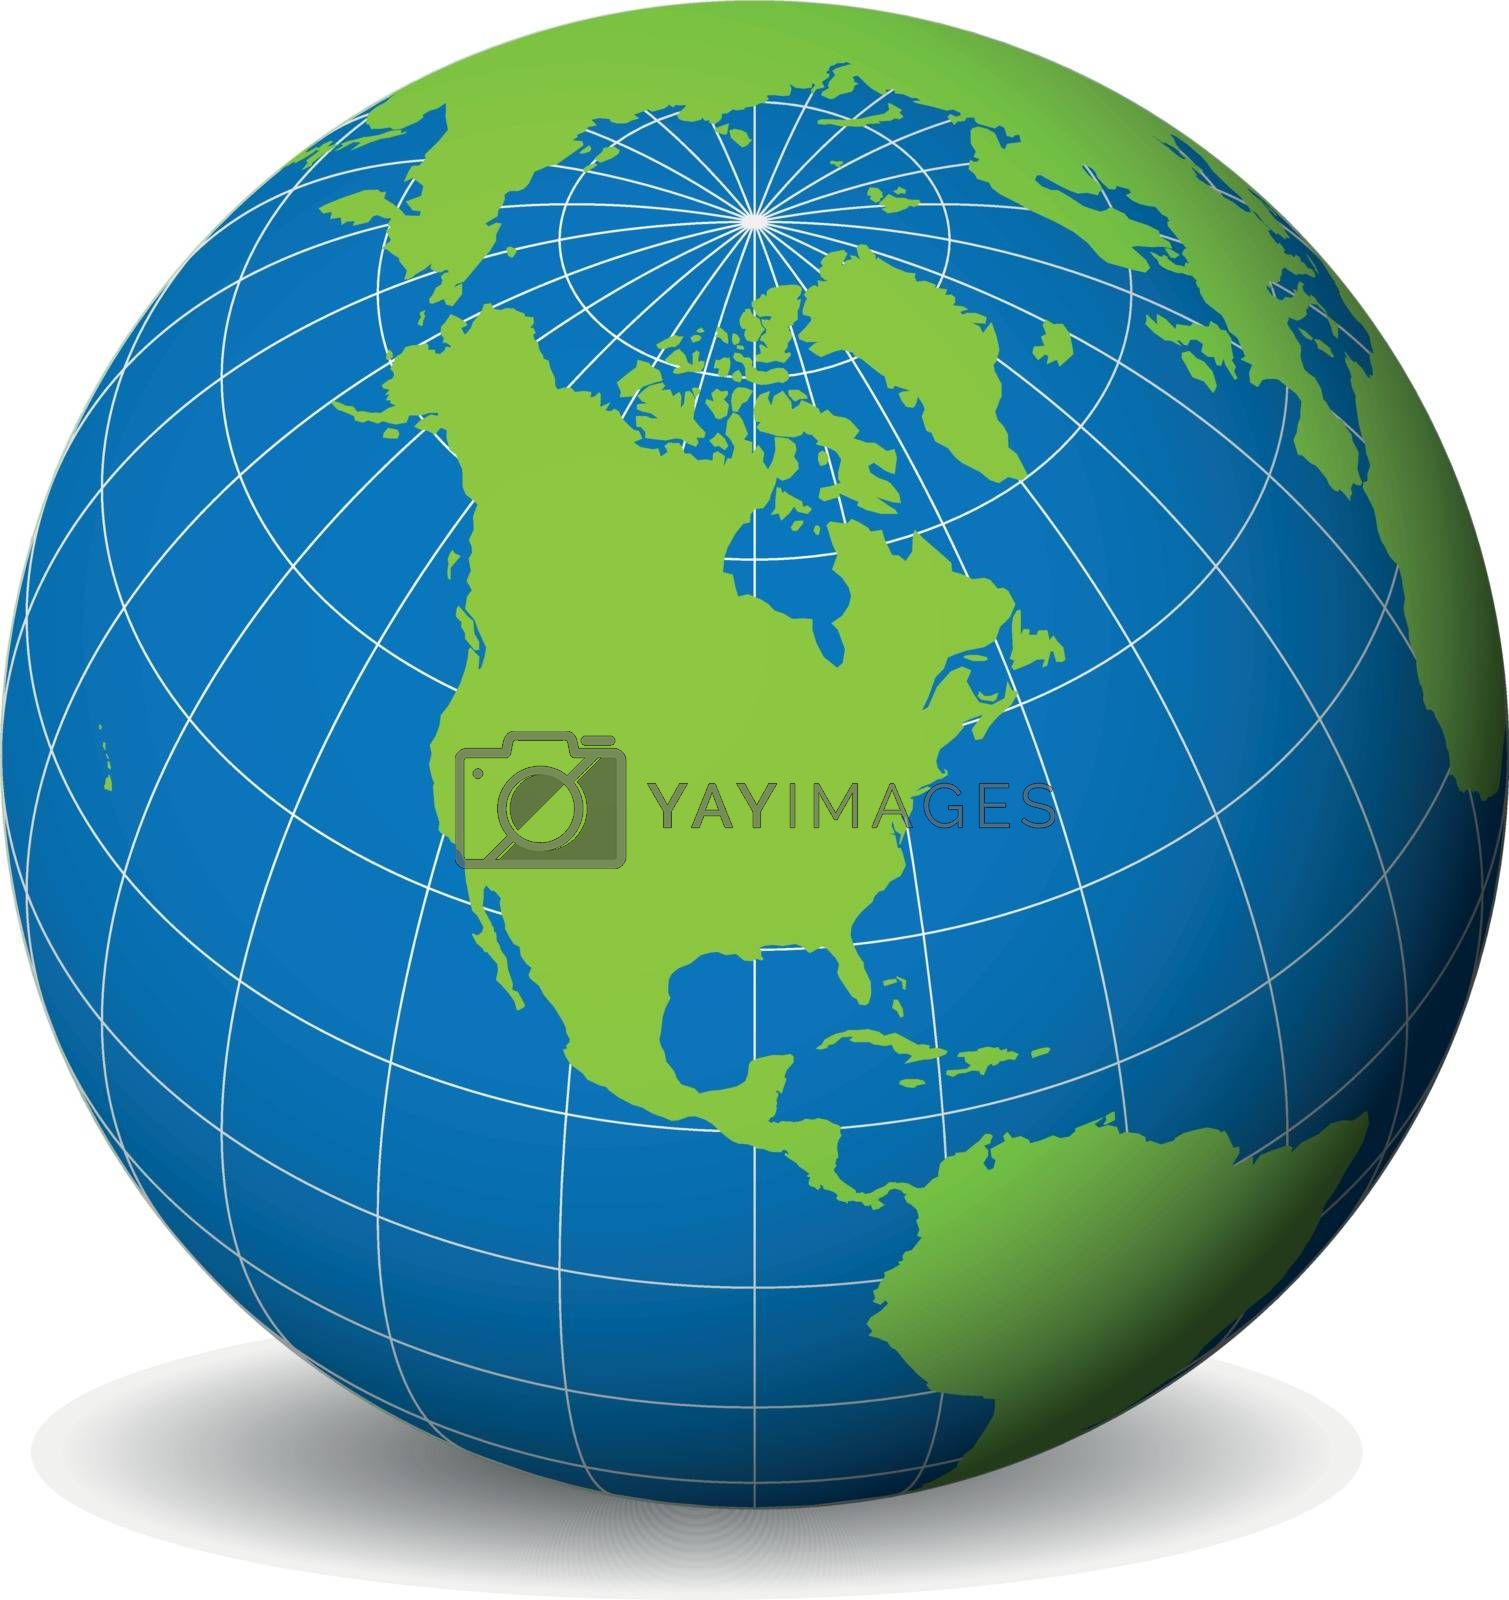 Earth Globe With Green World Map And Blue Seas And Oceans Focused On North America With Thin White Meridians And Parallels 3d Vector Illustration Royalty Free Stock Image Stock Photos Royalty